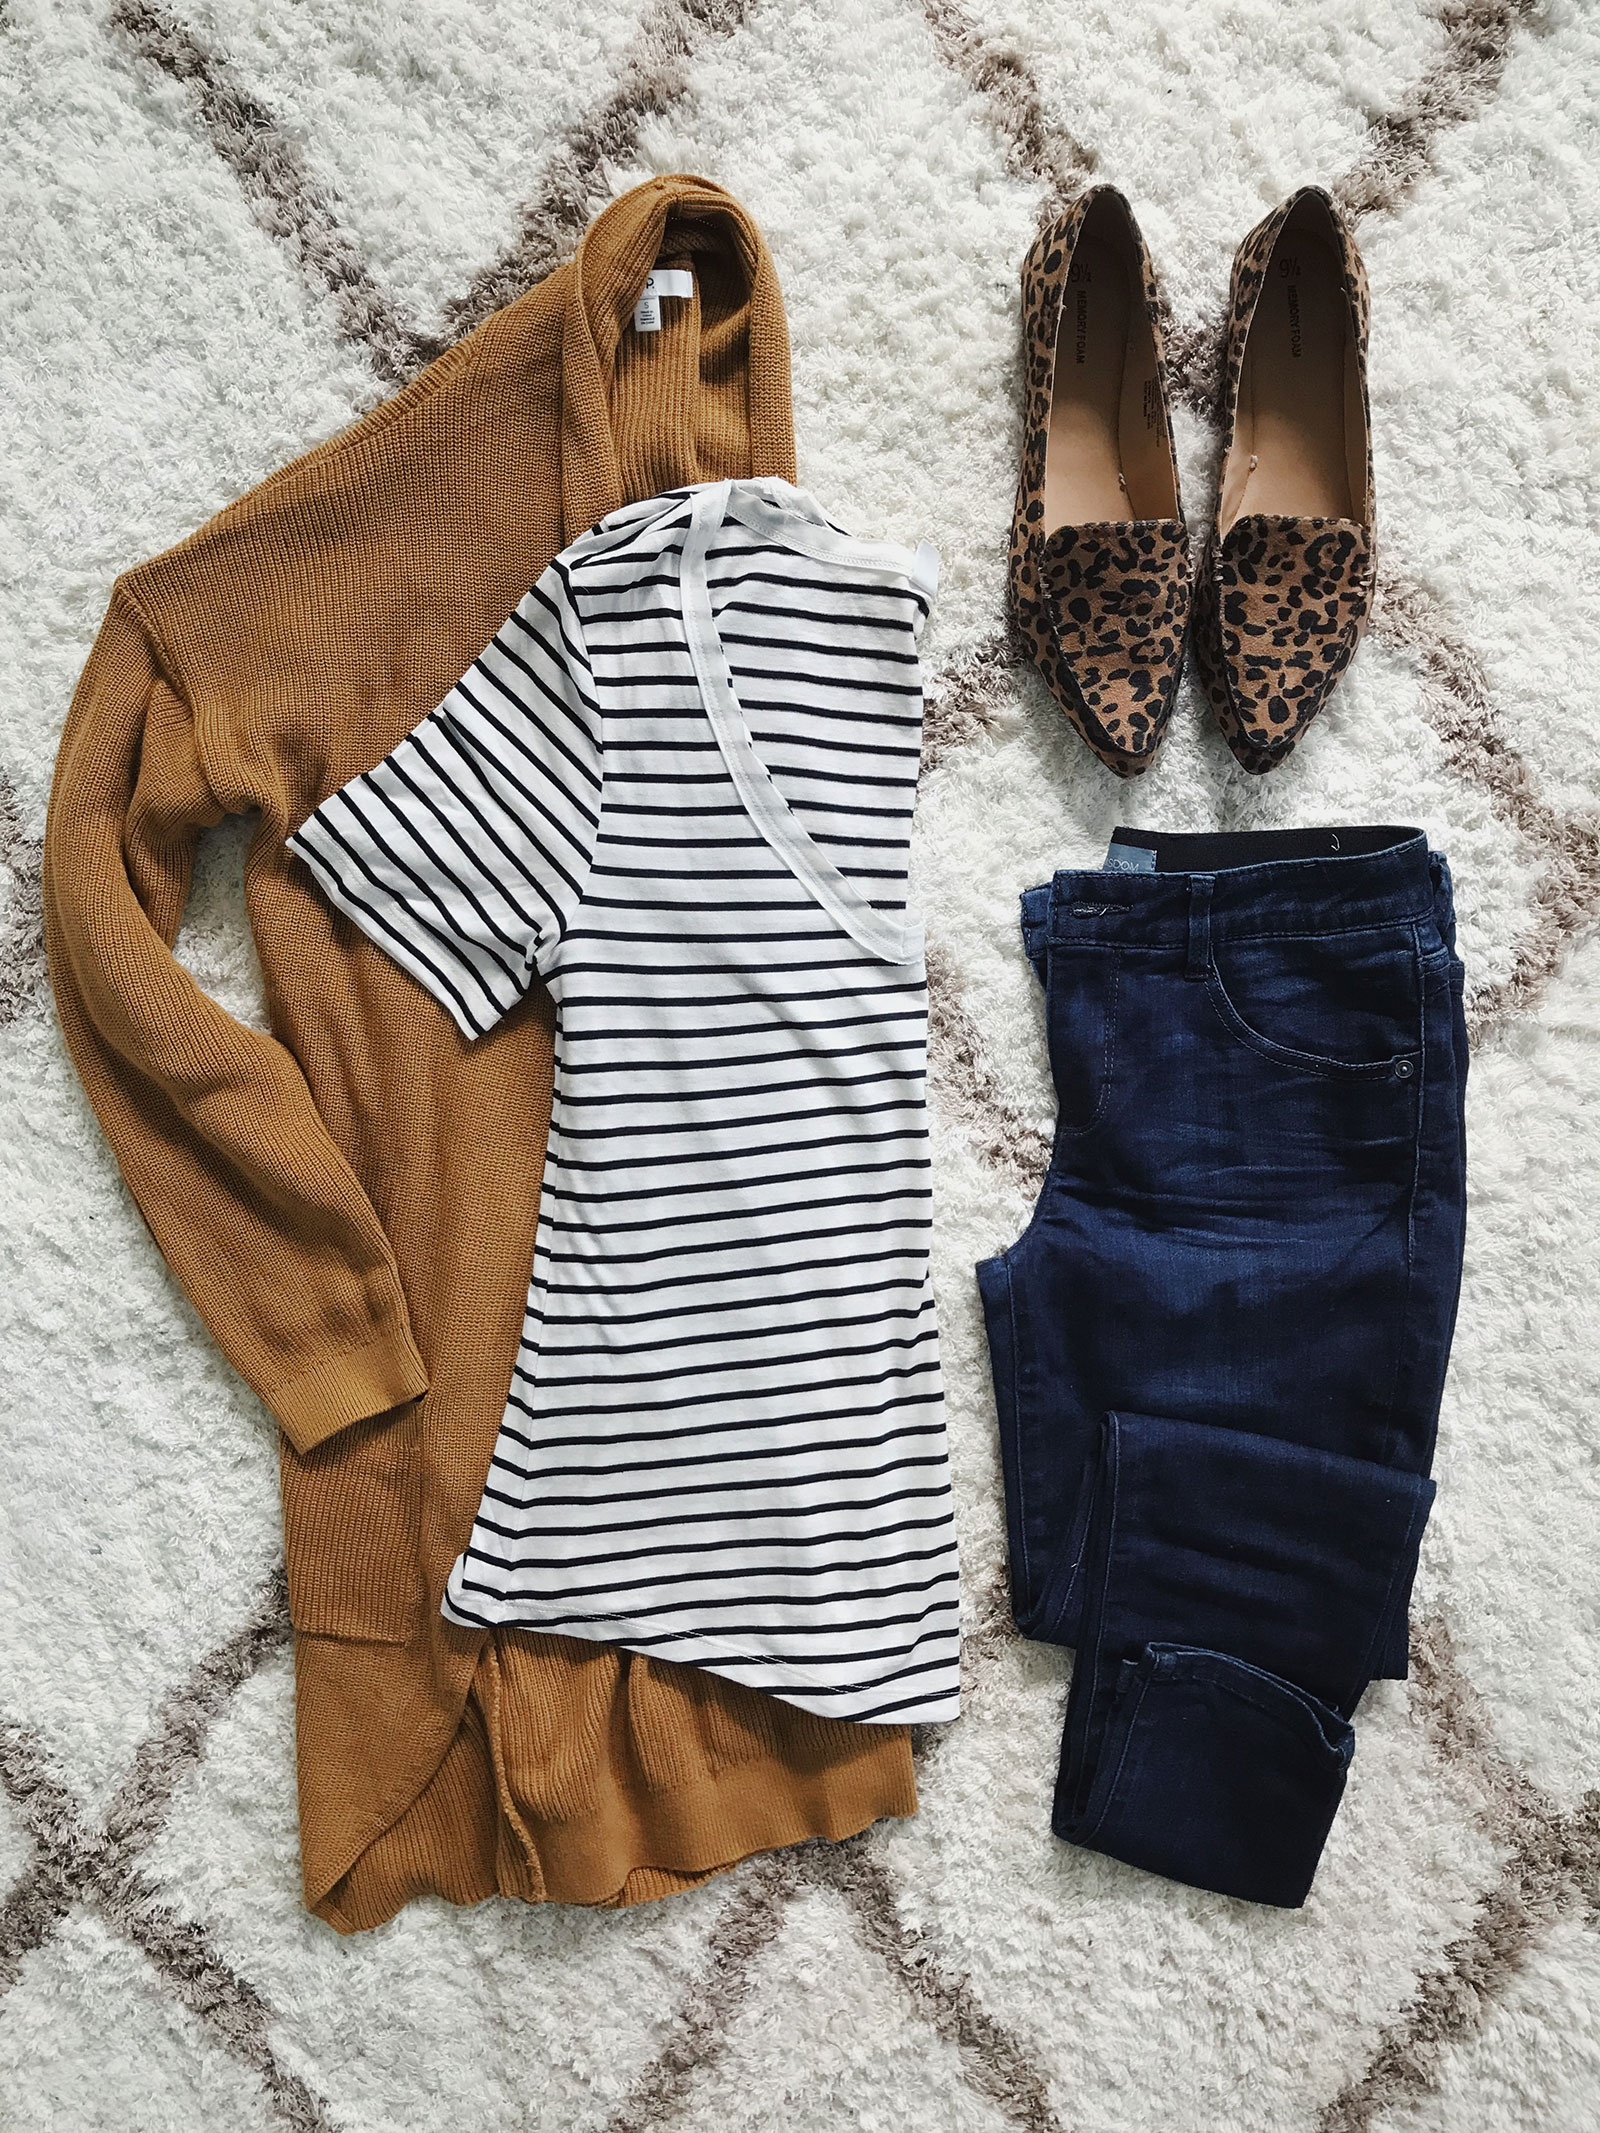 Fall outfit idea with camel cardigan, striped tee and leopard flats